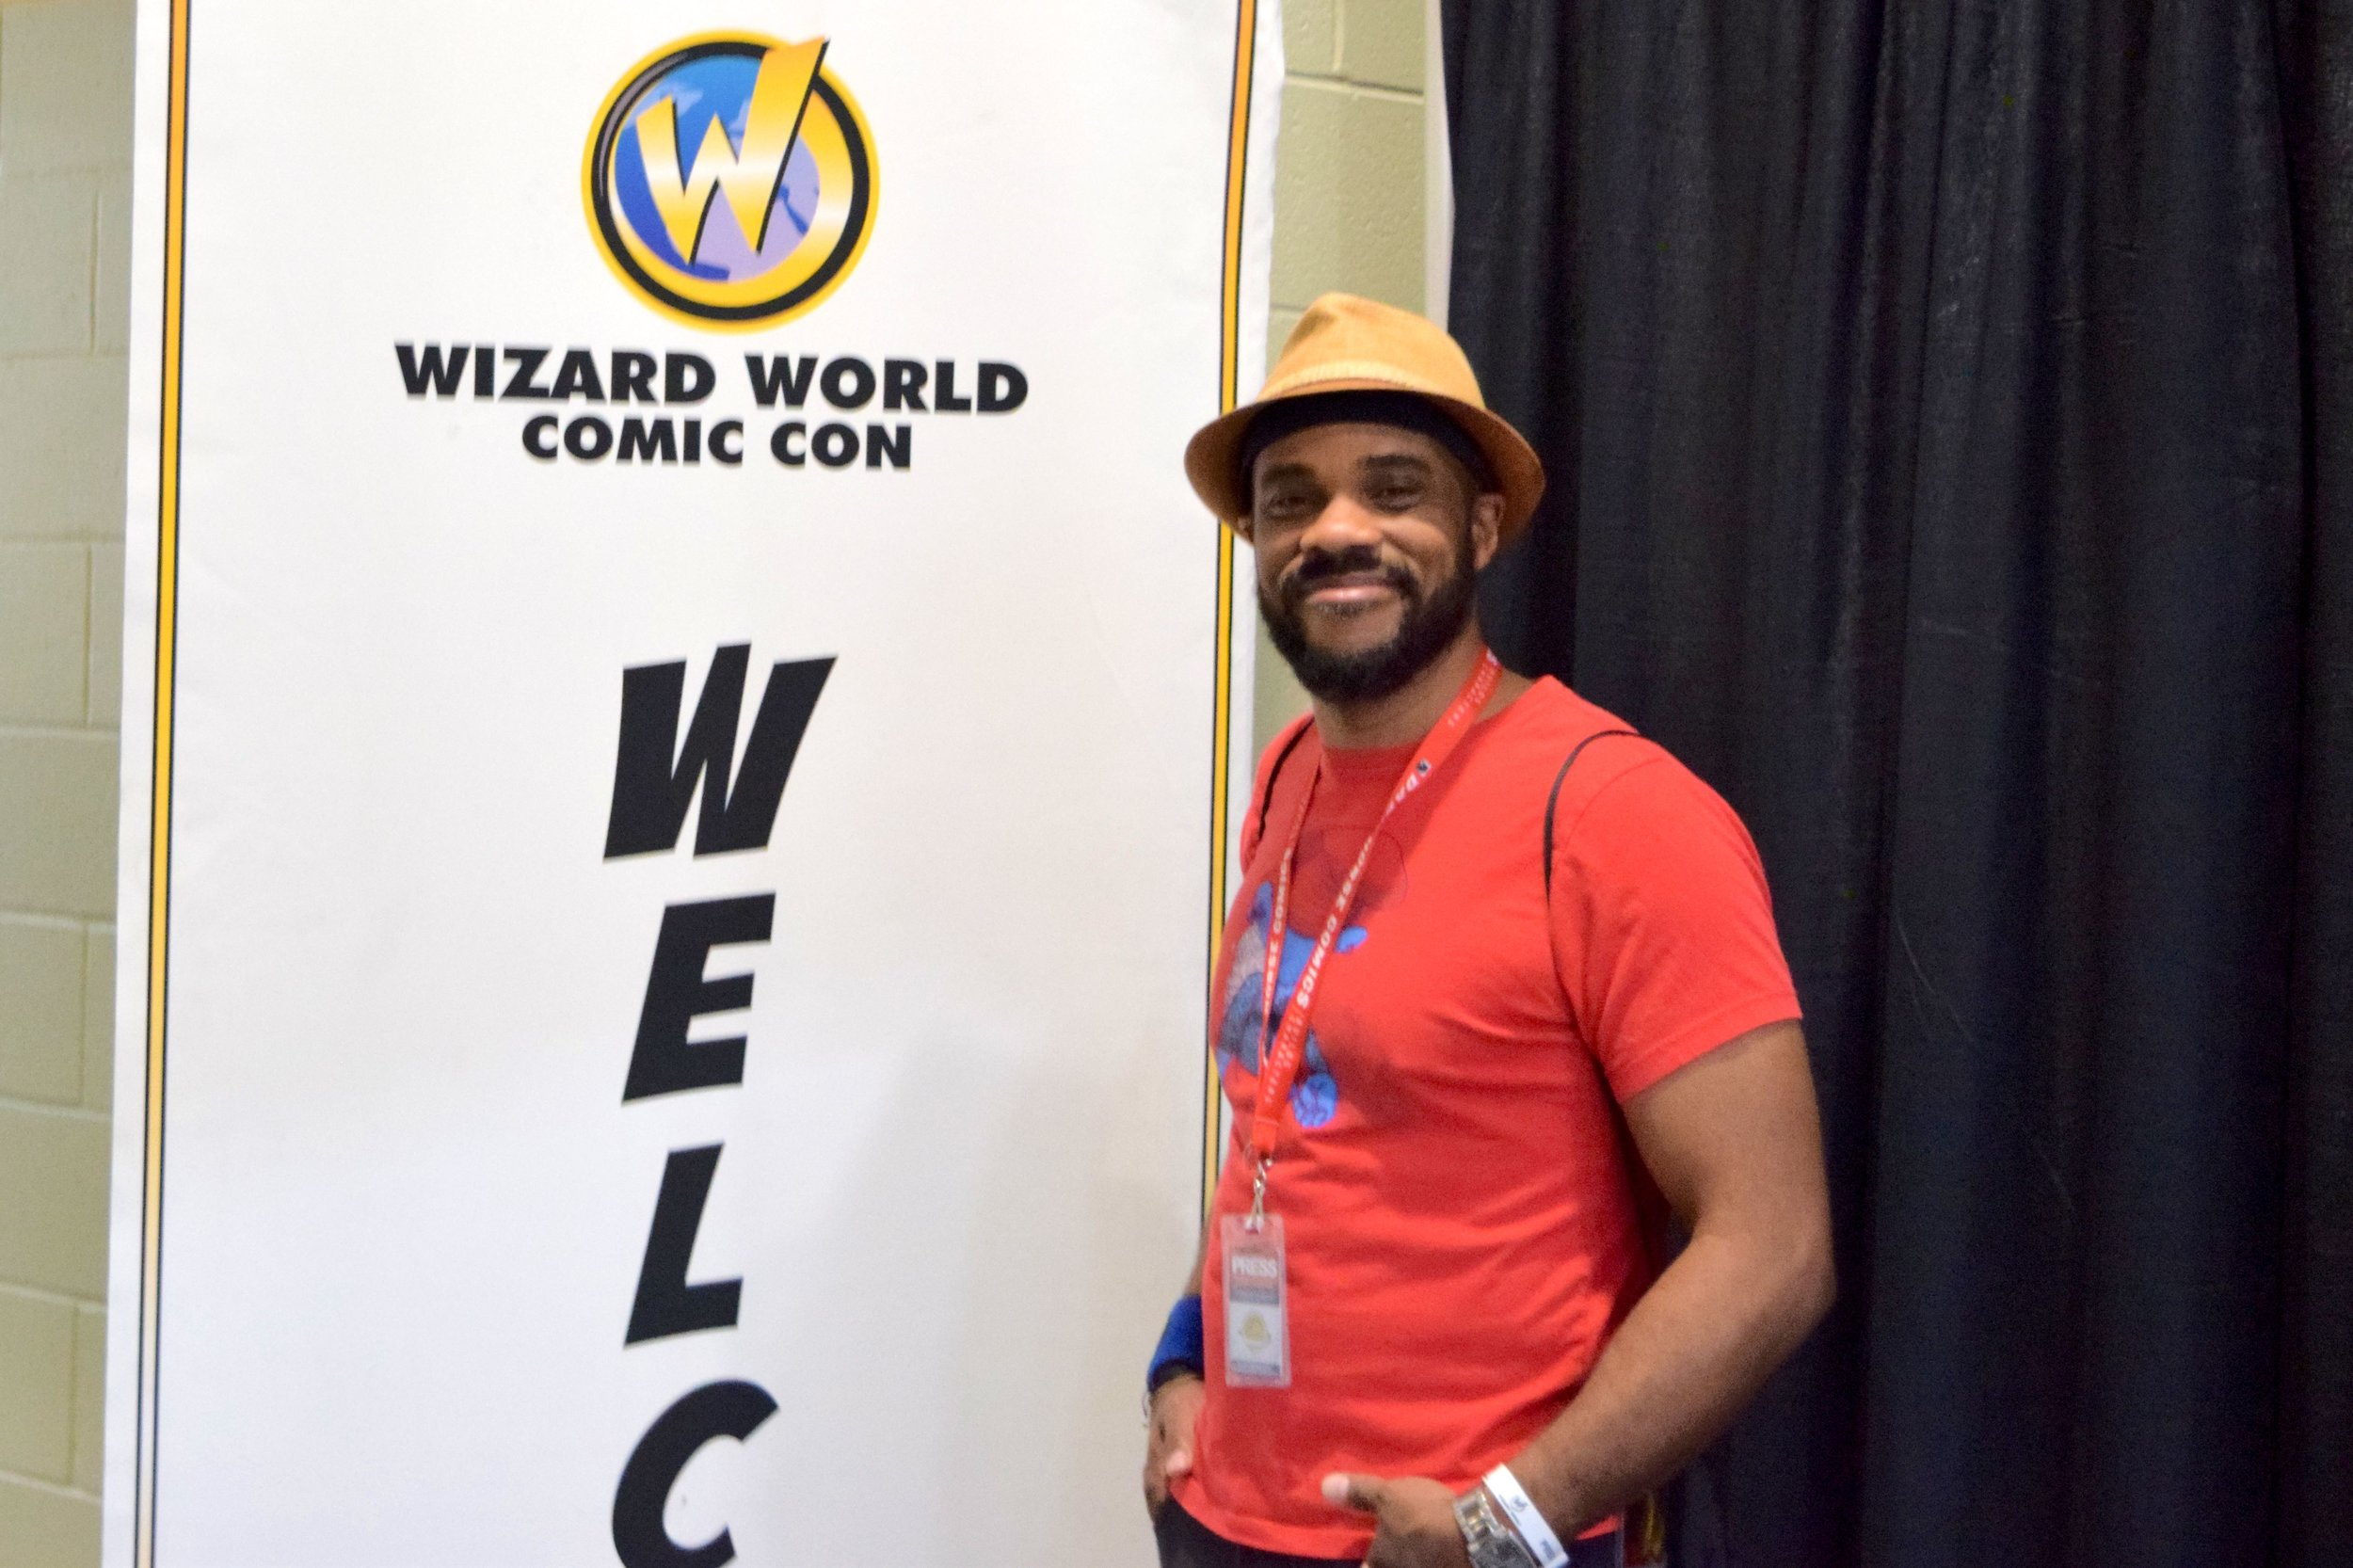 R. Alan Brooks, covering the convention for Nerd Team 30!